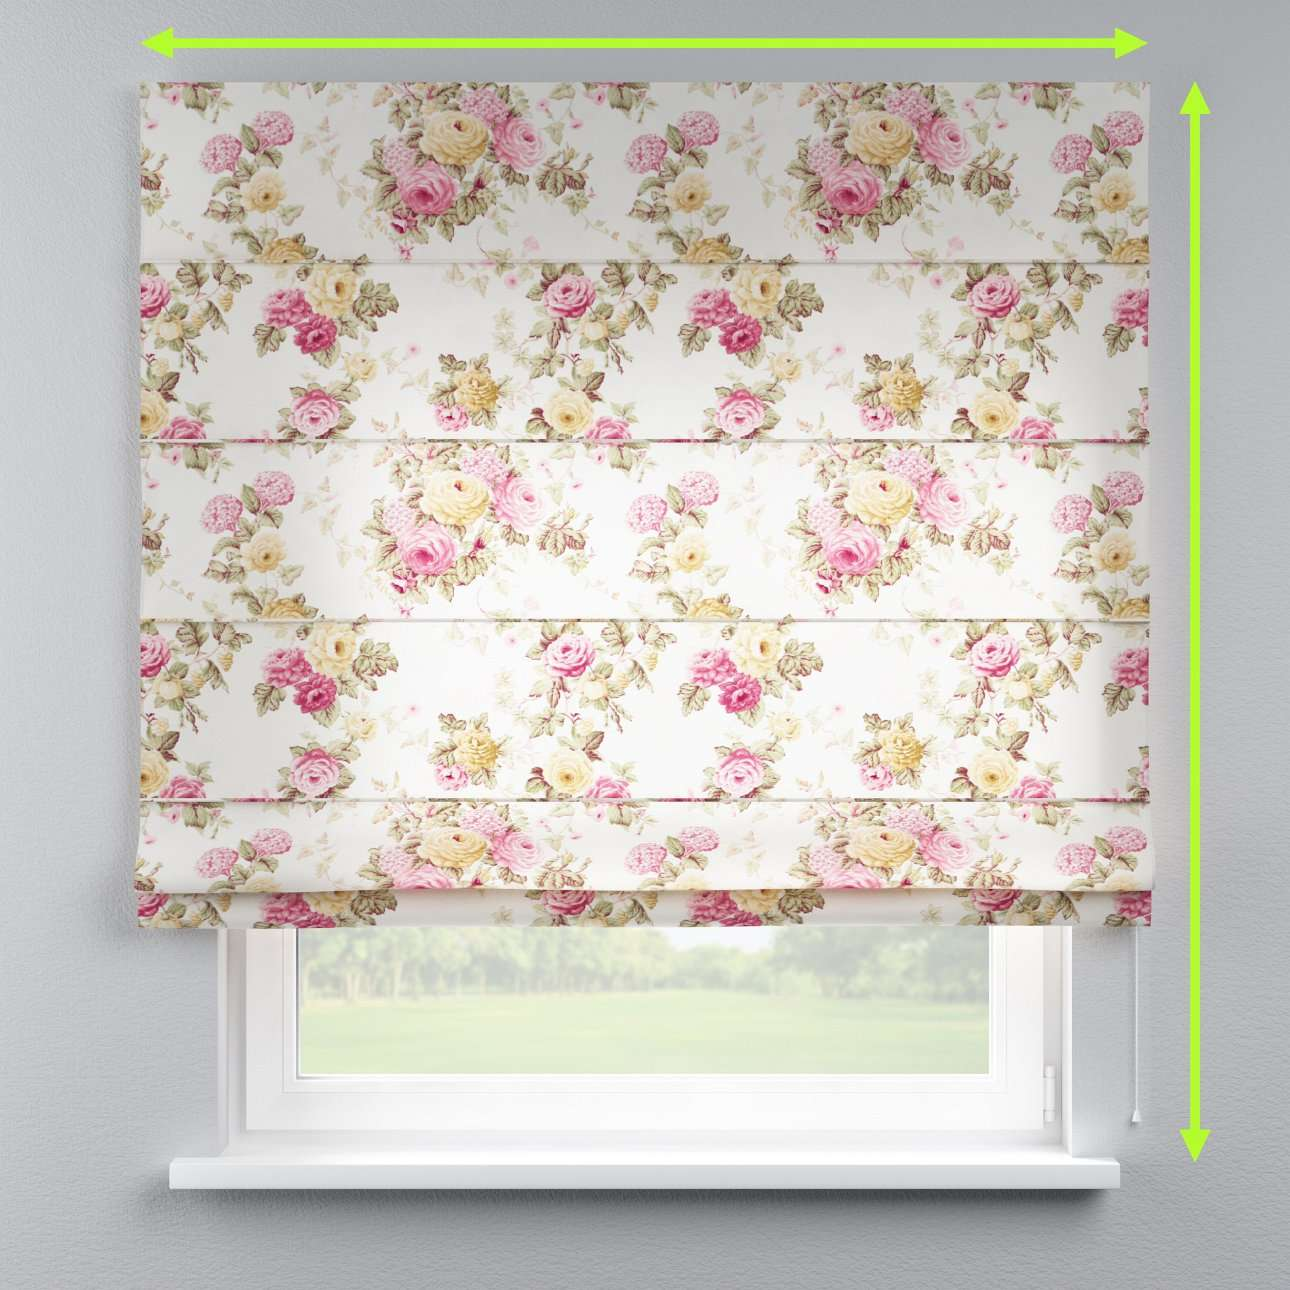 Capri roman blind in collection Mirella, fabric: 140-40